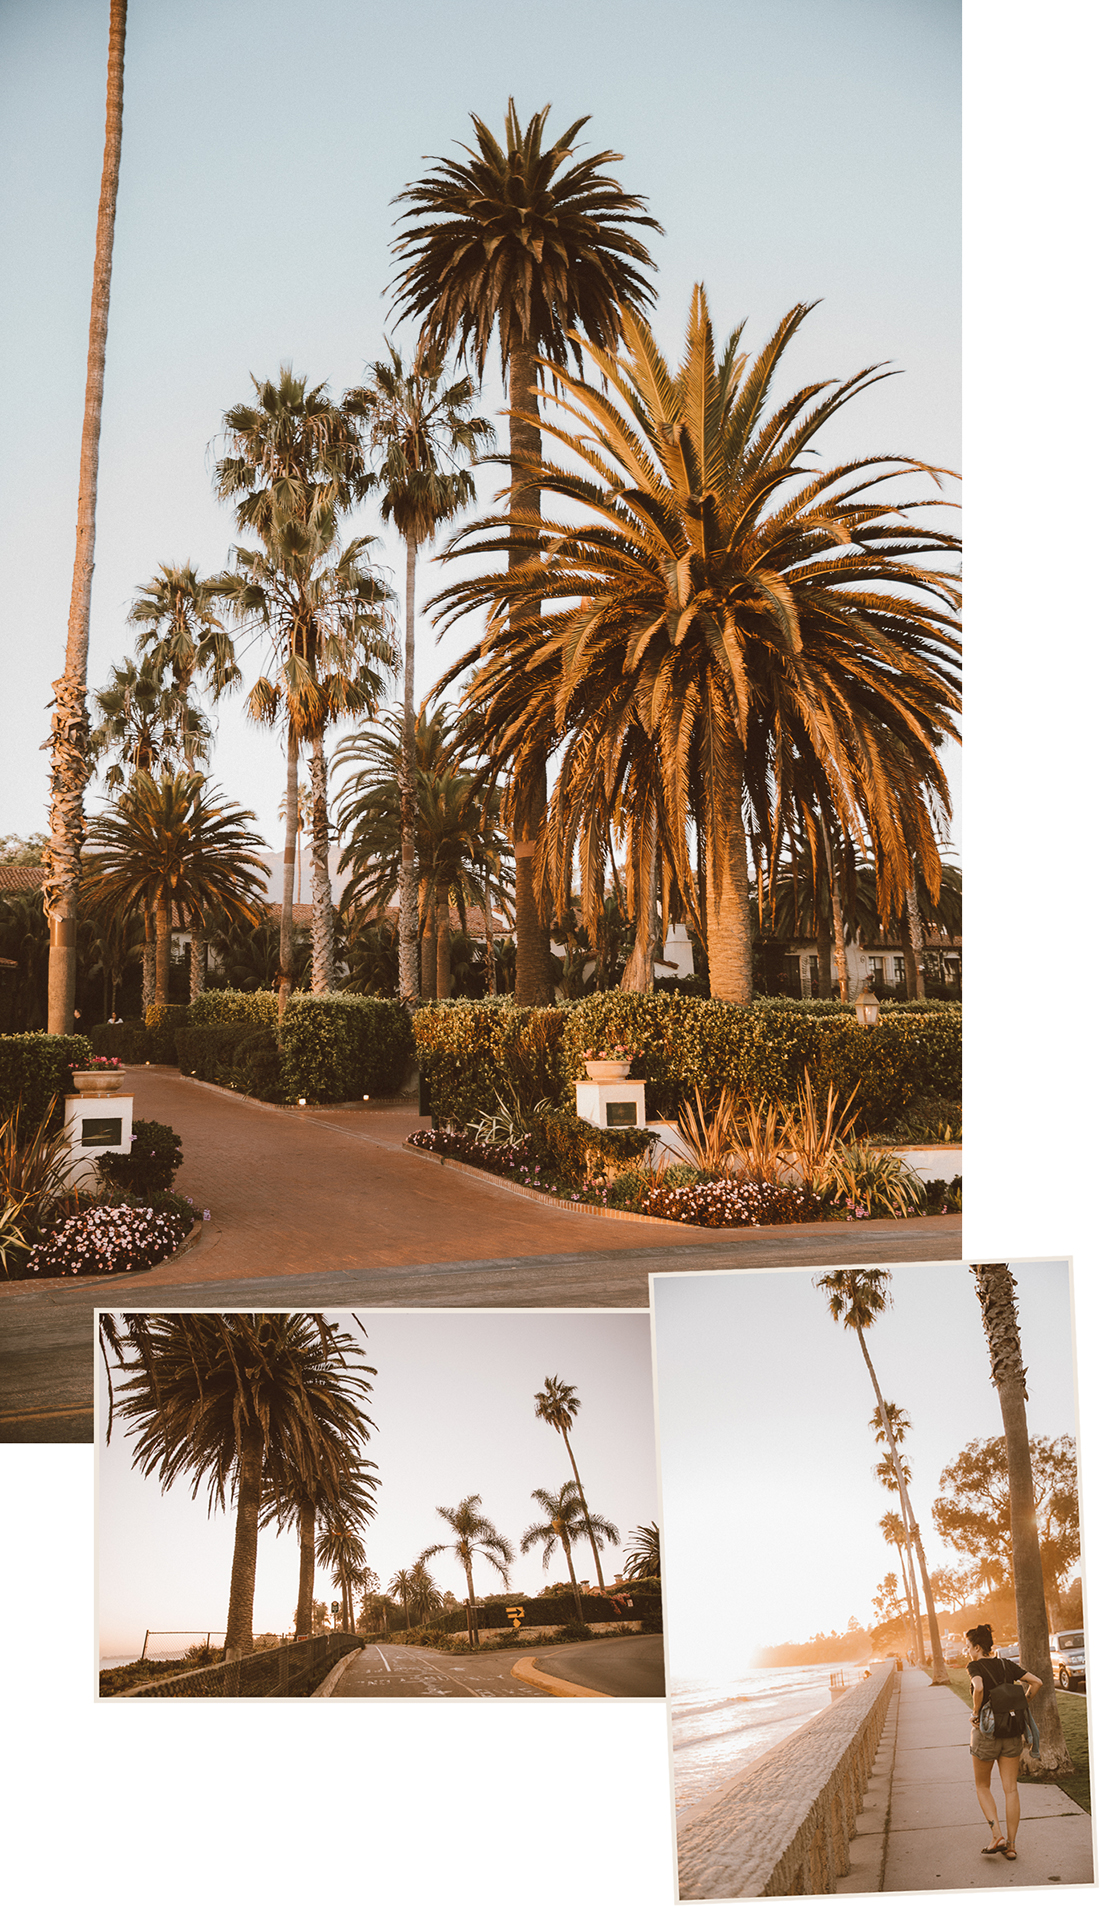 California Santa Barbara Road trip by photographer Ailera Stone